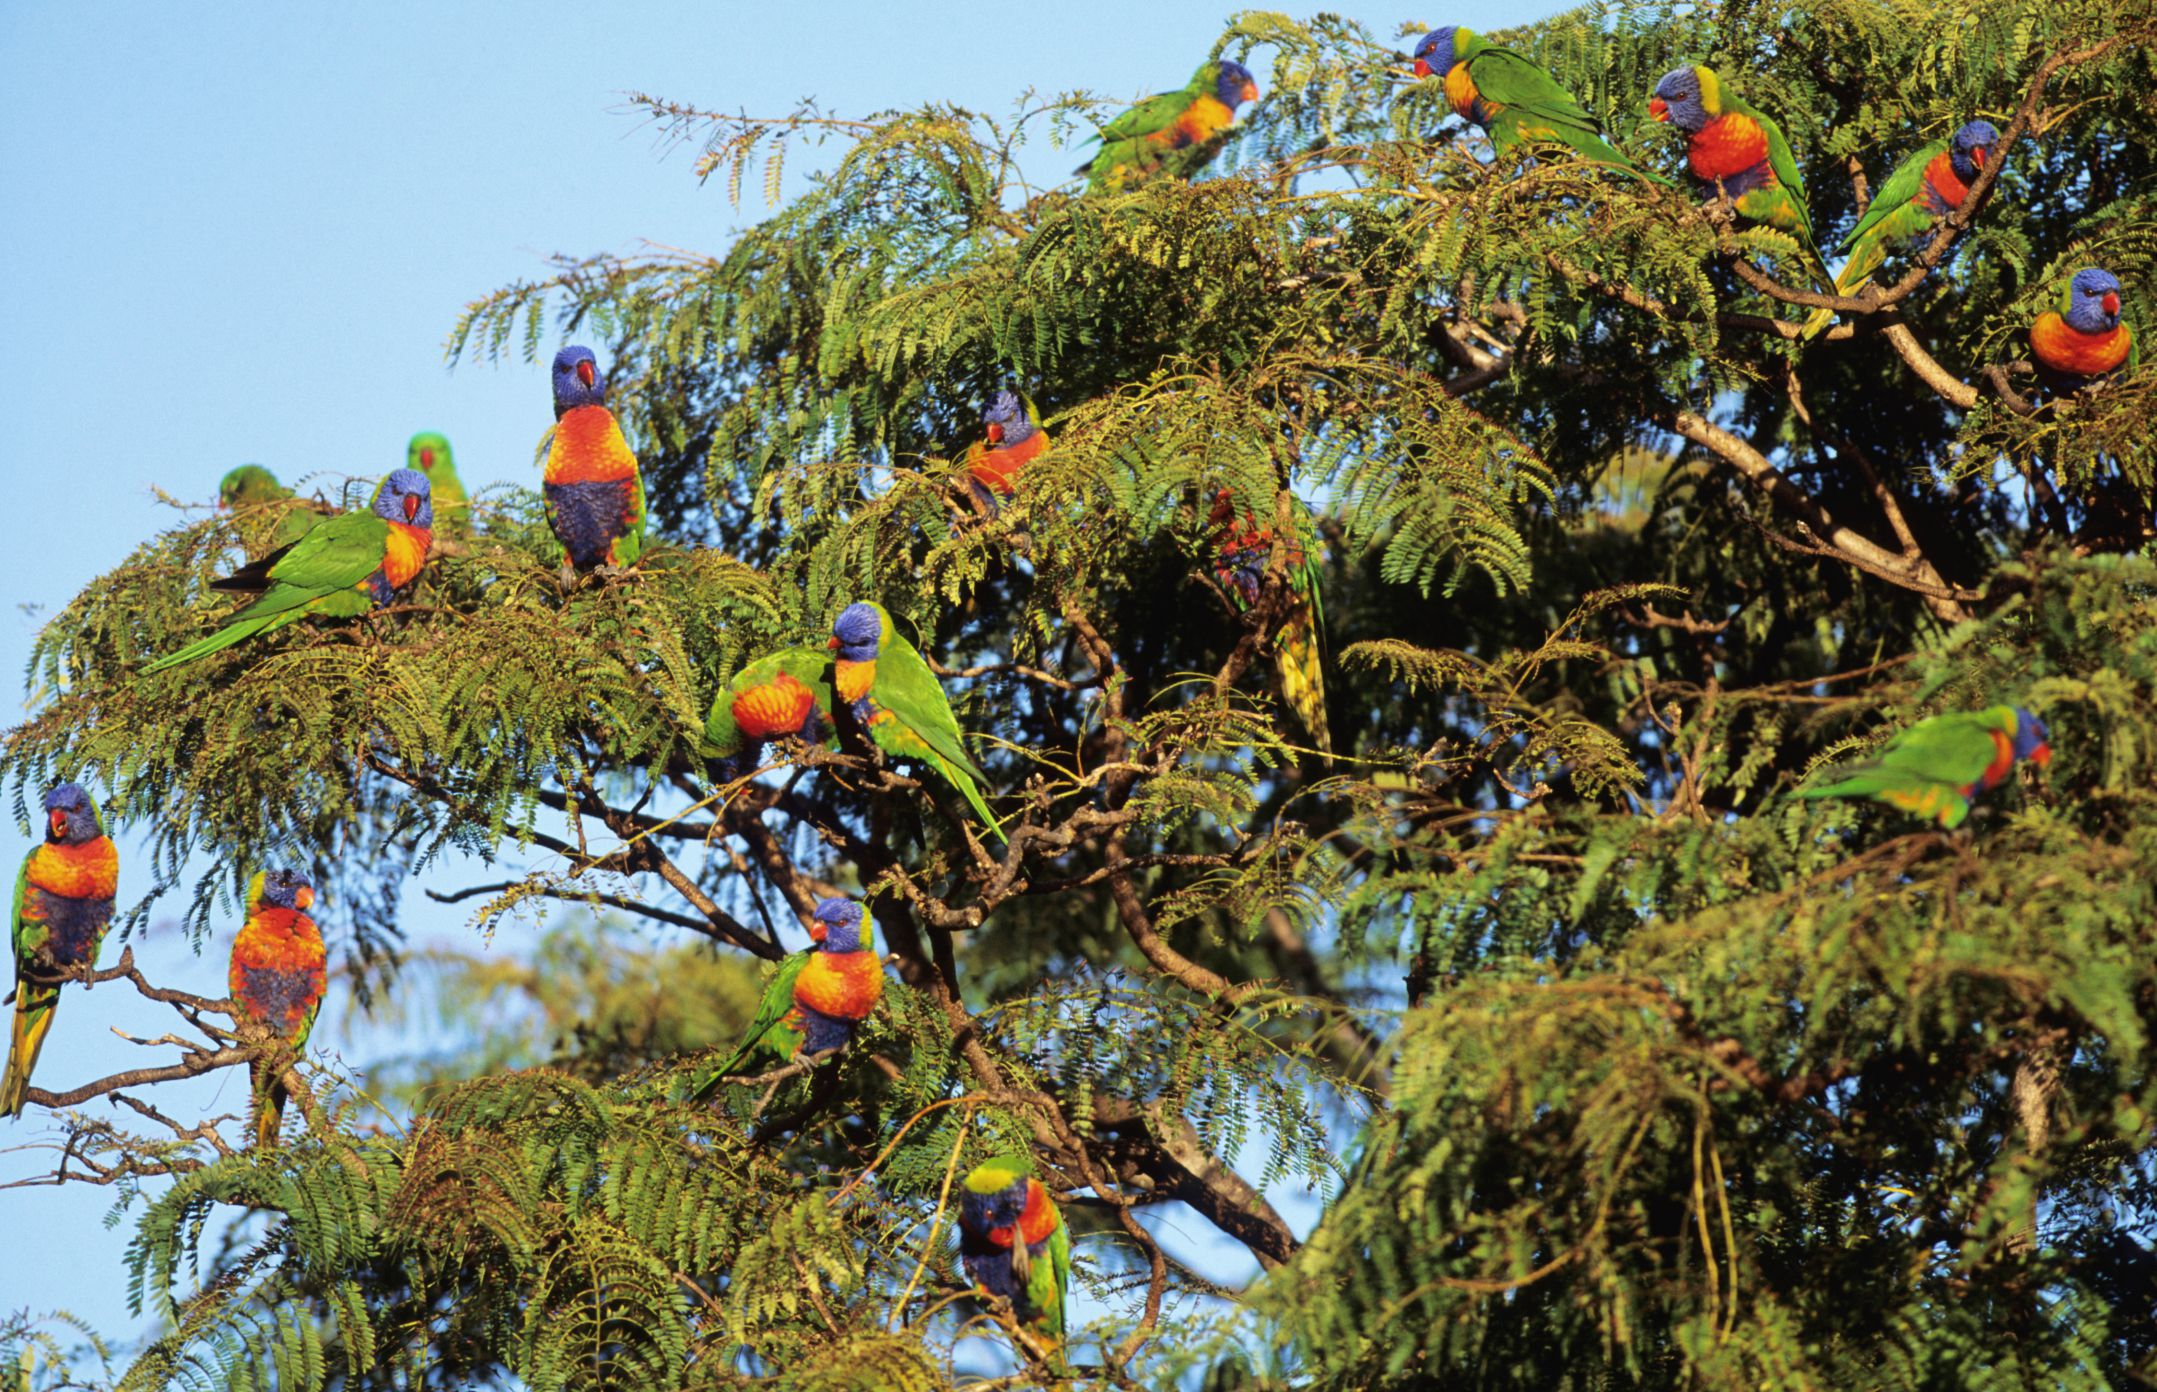 A flock of rainbow lorikeets perched on a tree